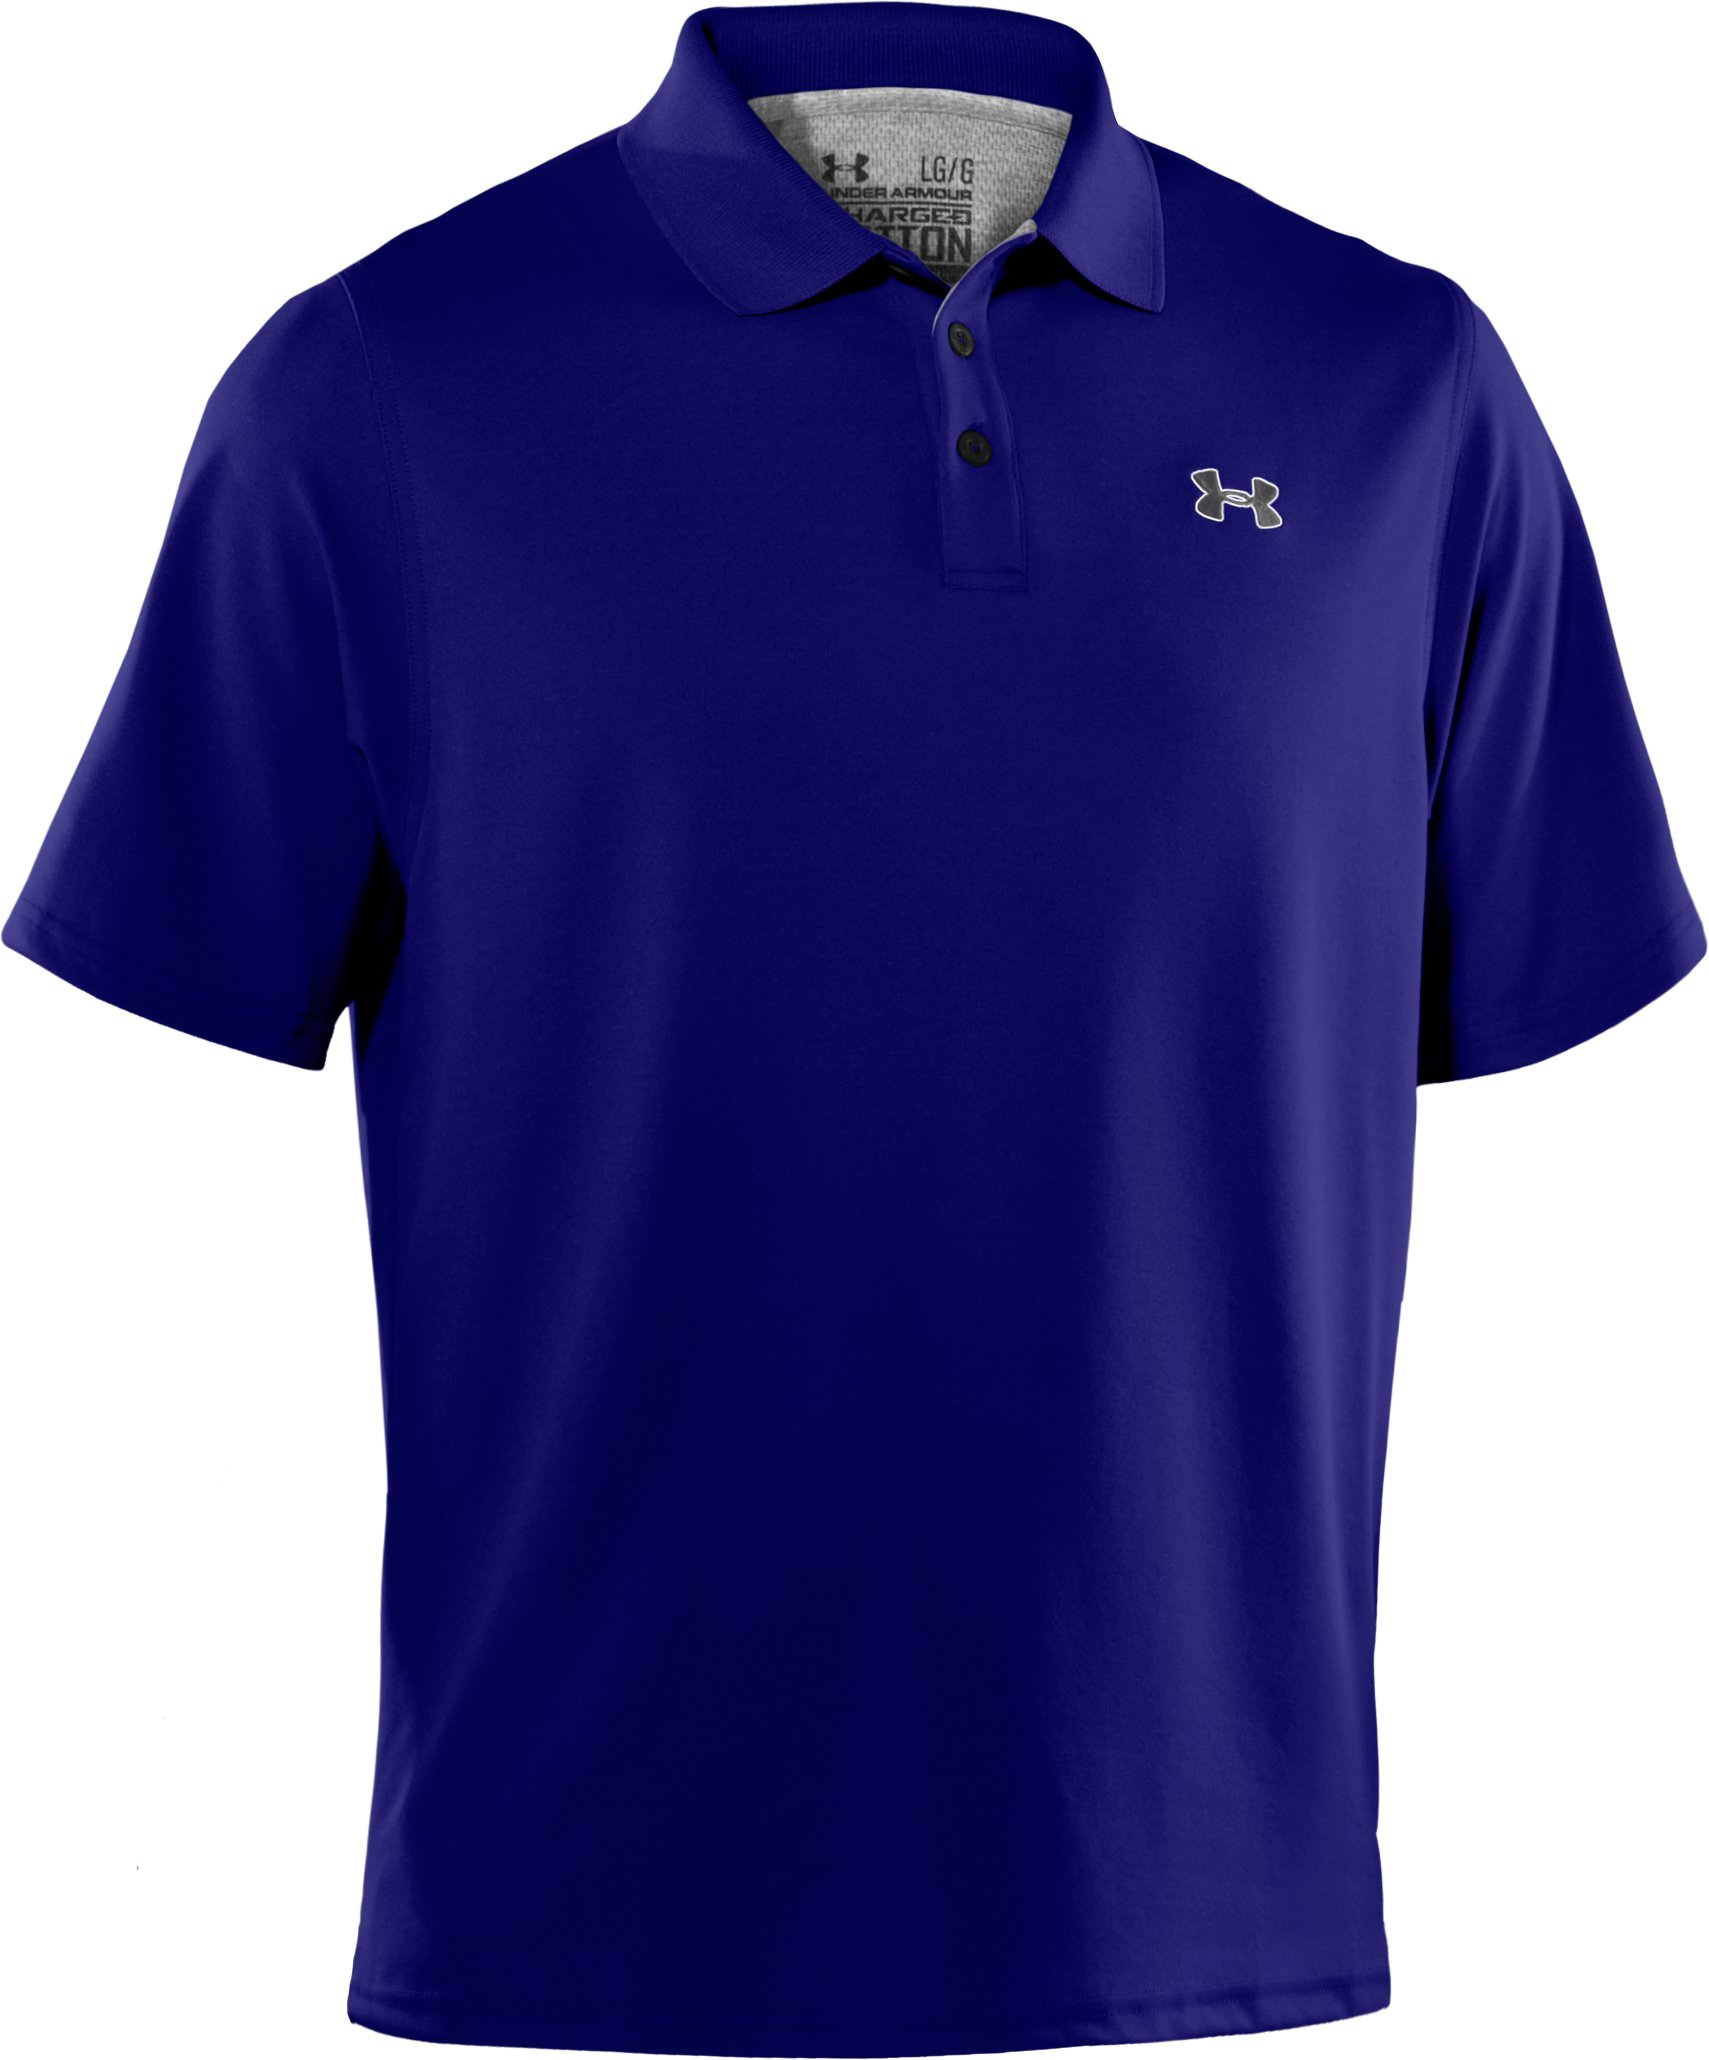 Men's Charged Cotton® Pique Polo, Caspian, undefined